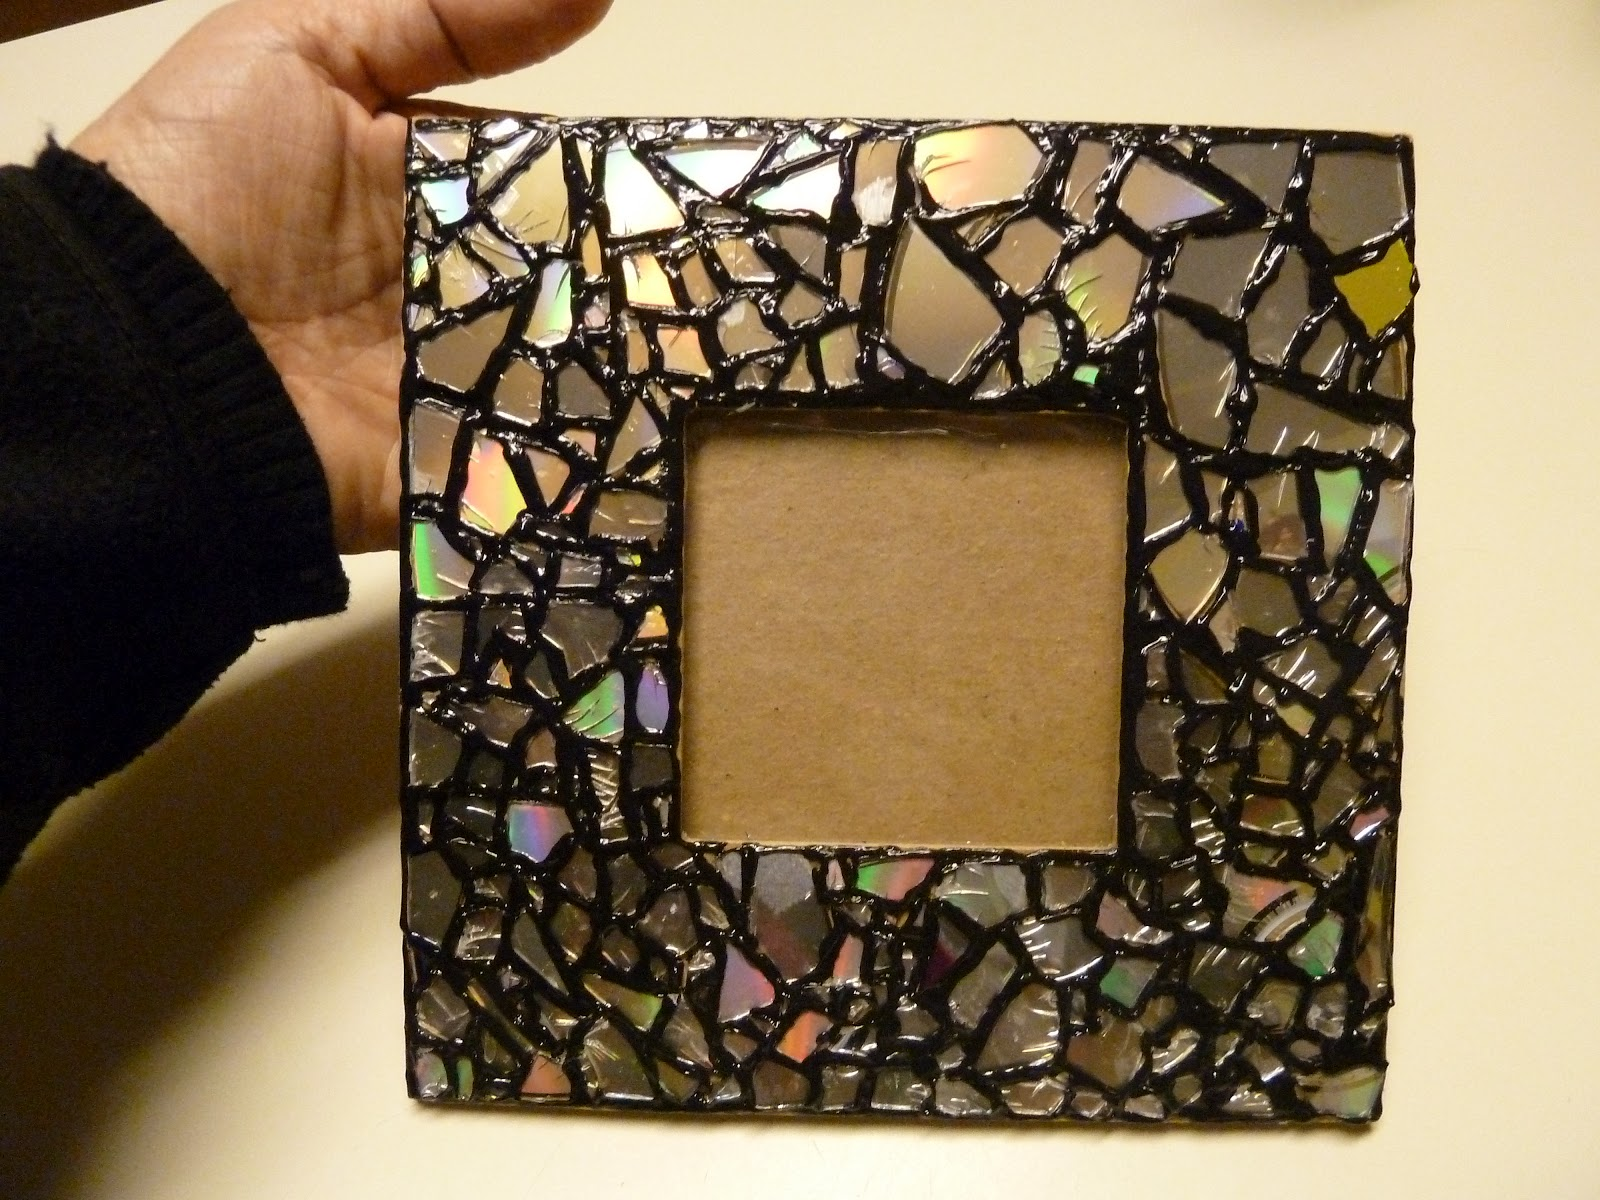 Make It Easy Crafts Recycled Cd Mosaic Photo Frame